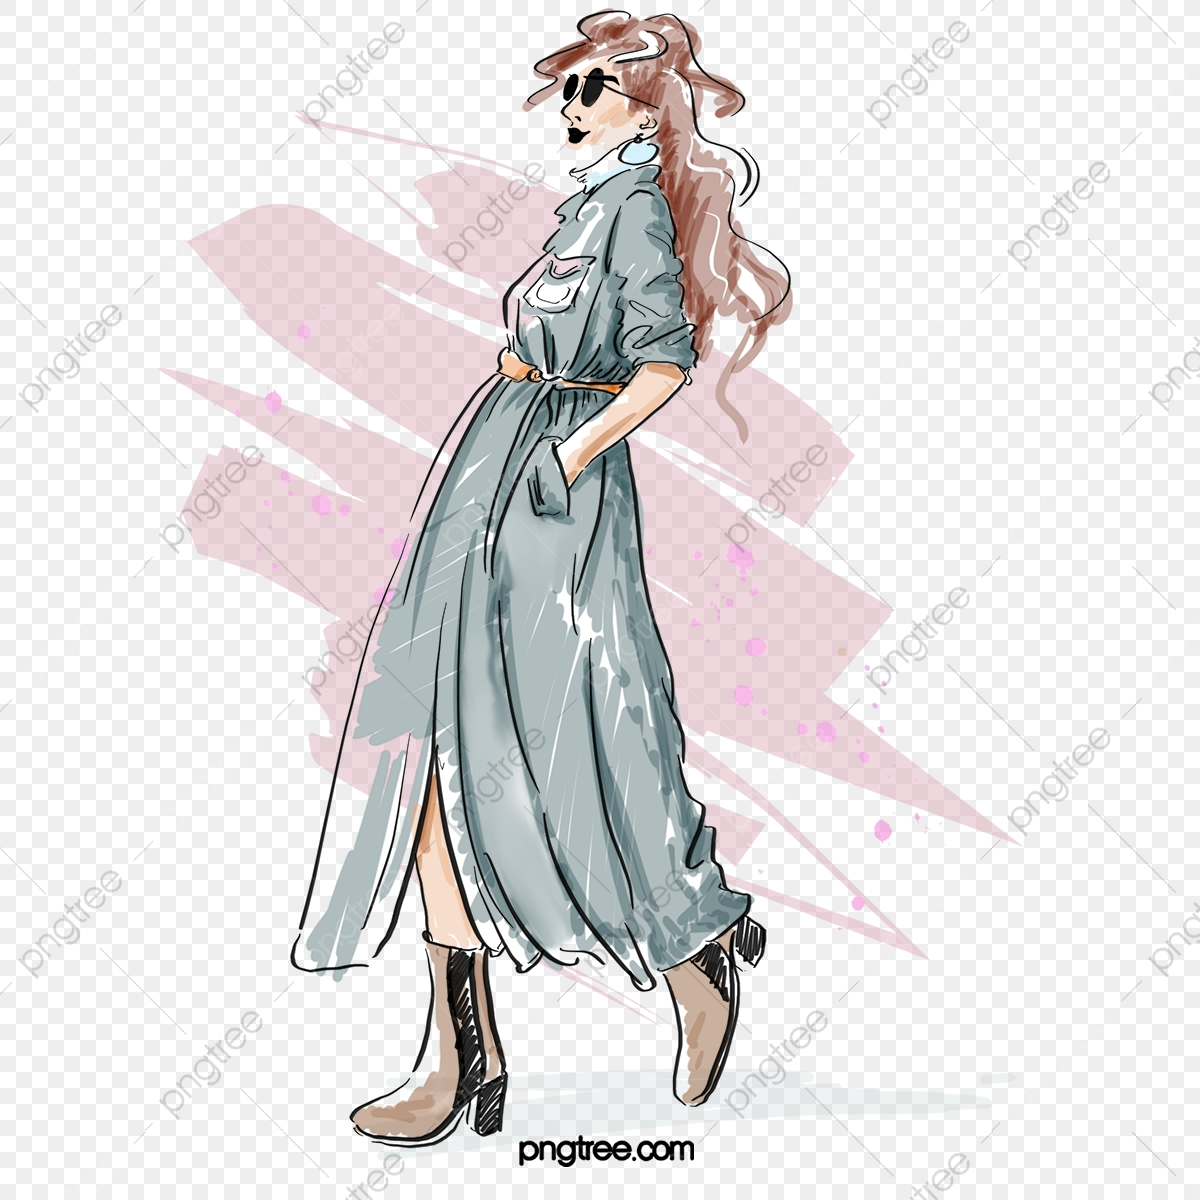 Fashion Gray Trench Coat Sunglasses High Heels Hand Painted Mannequin Elements Fashion Clothes Illustration Png Transparent Clipart Image And Psd File For Free Download